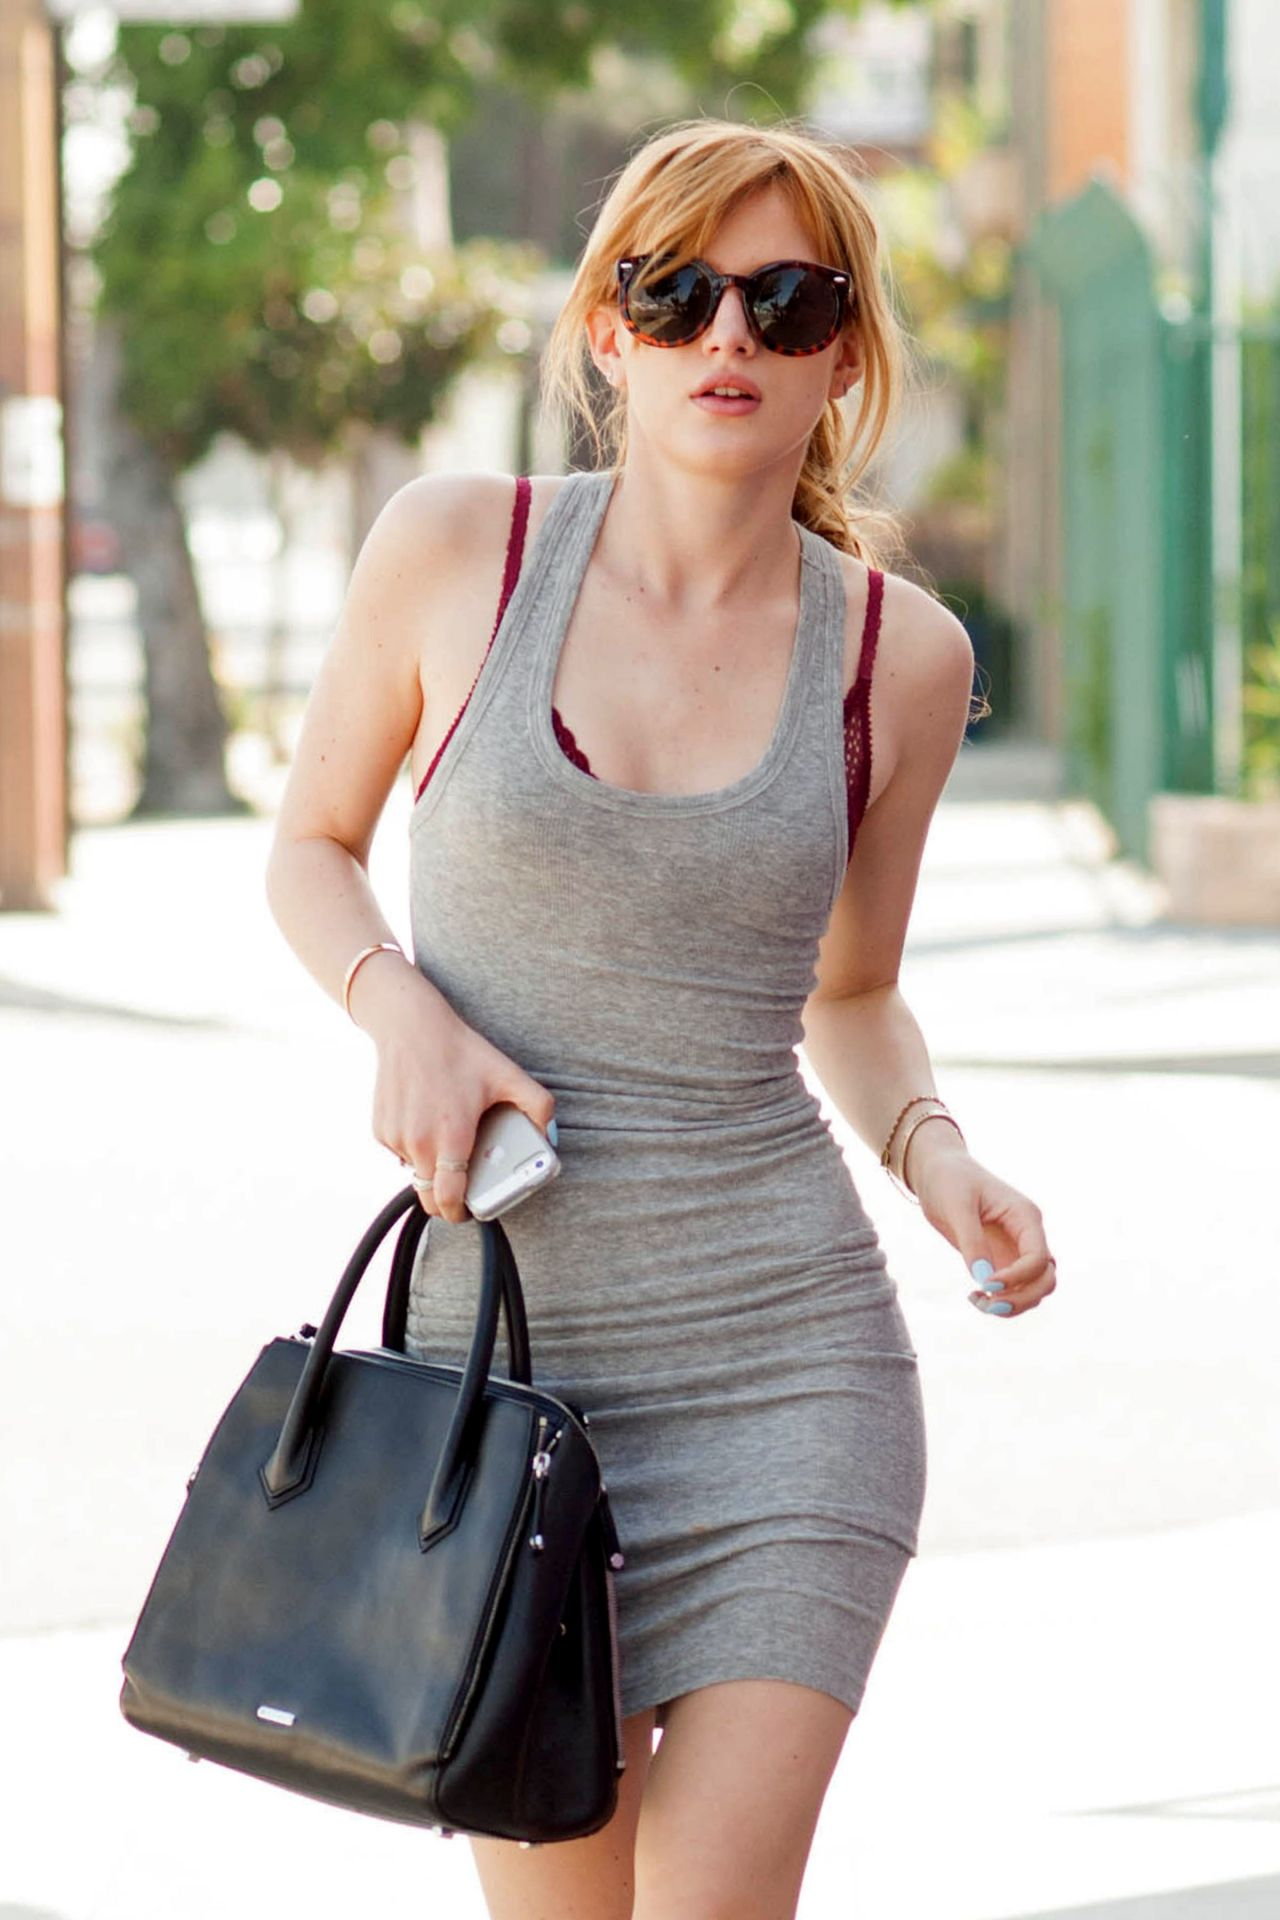 Bella Thorne in Spandex Mini Dress - Heads to a Recording Studio in LA, February 2014